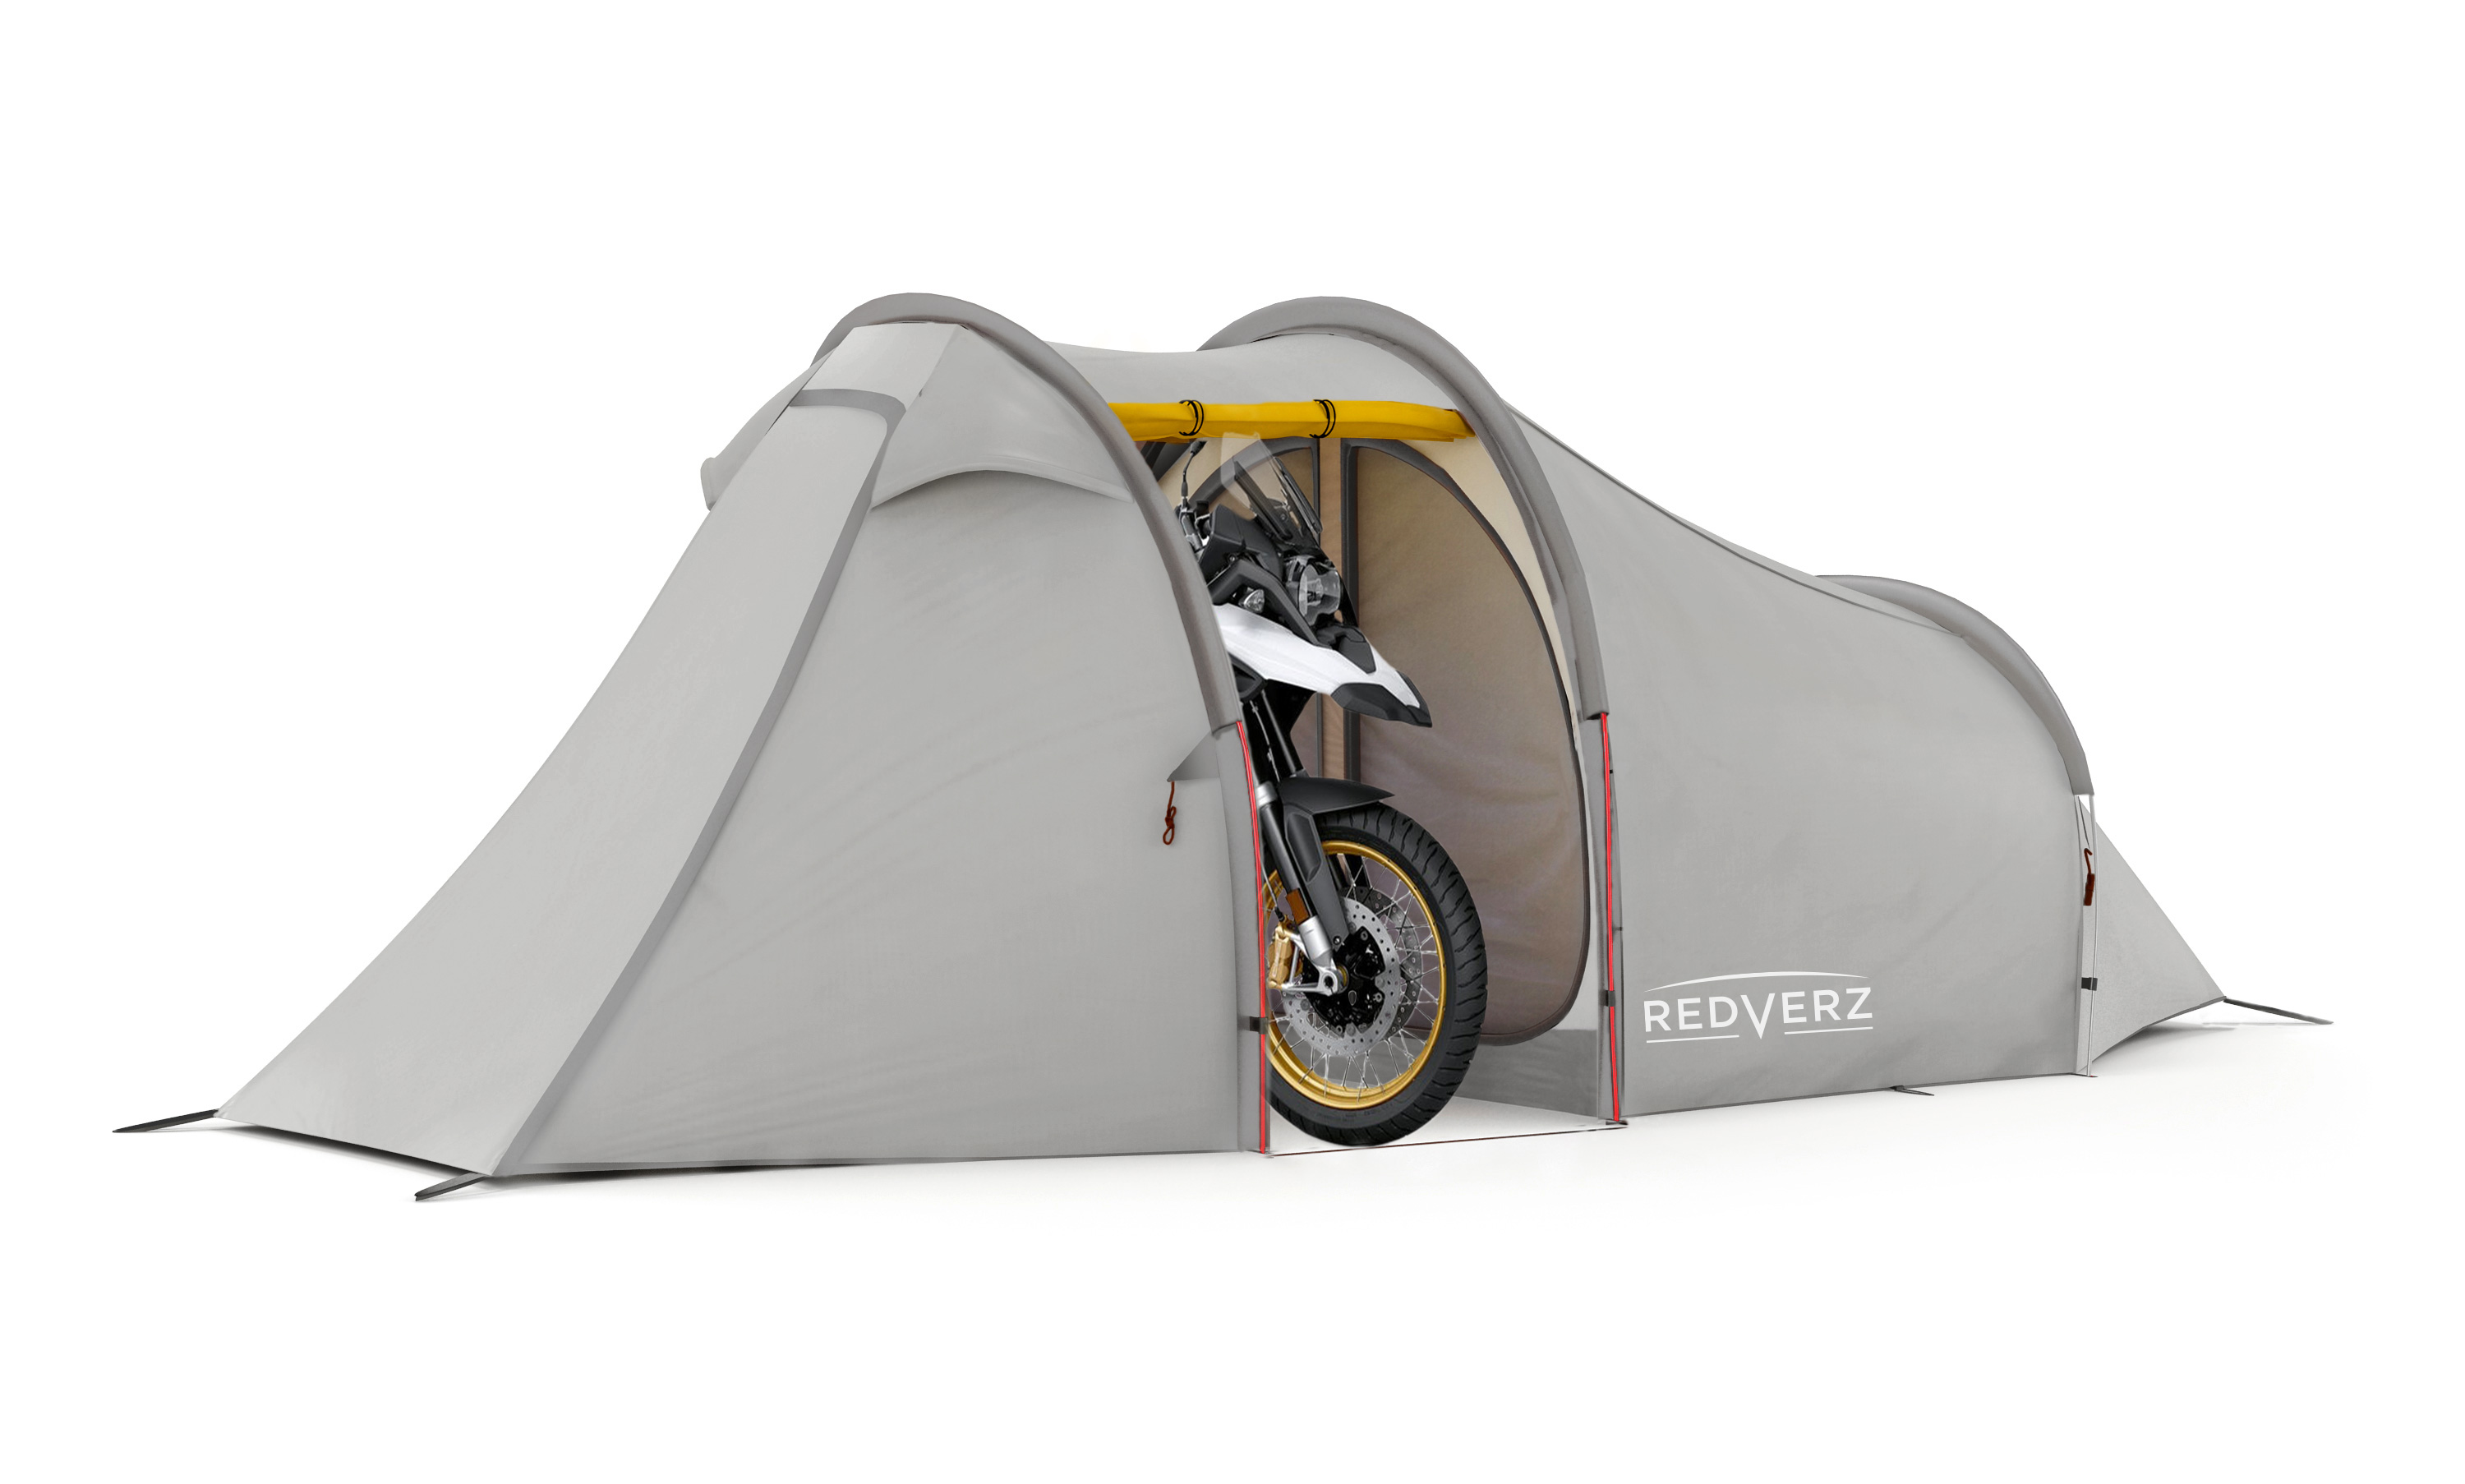 Redverz Gear 2019 Atacama Expedition  Tent